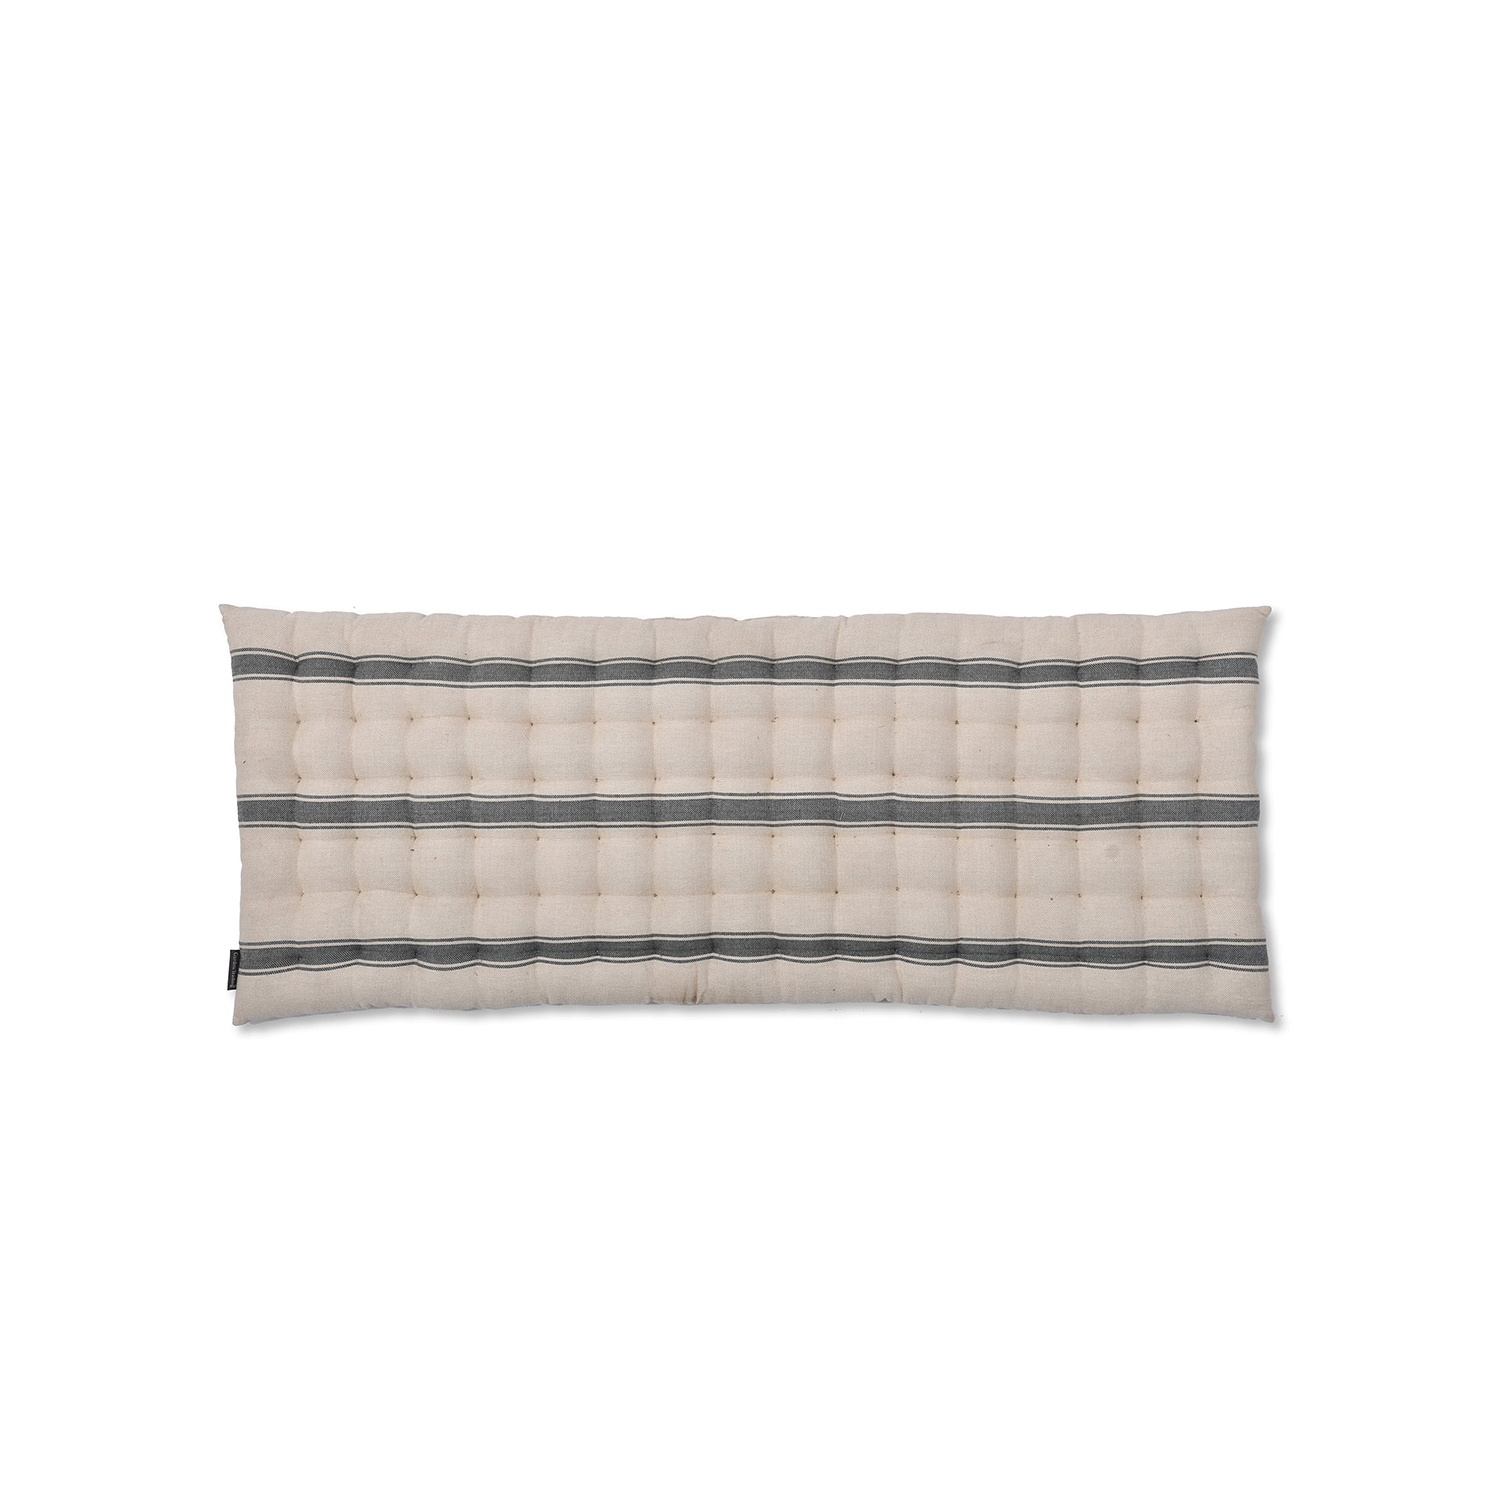 Image of Garden Trading Aldsworth Welly Bench Seat Pad, Cotton